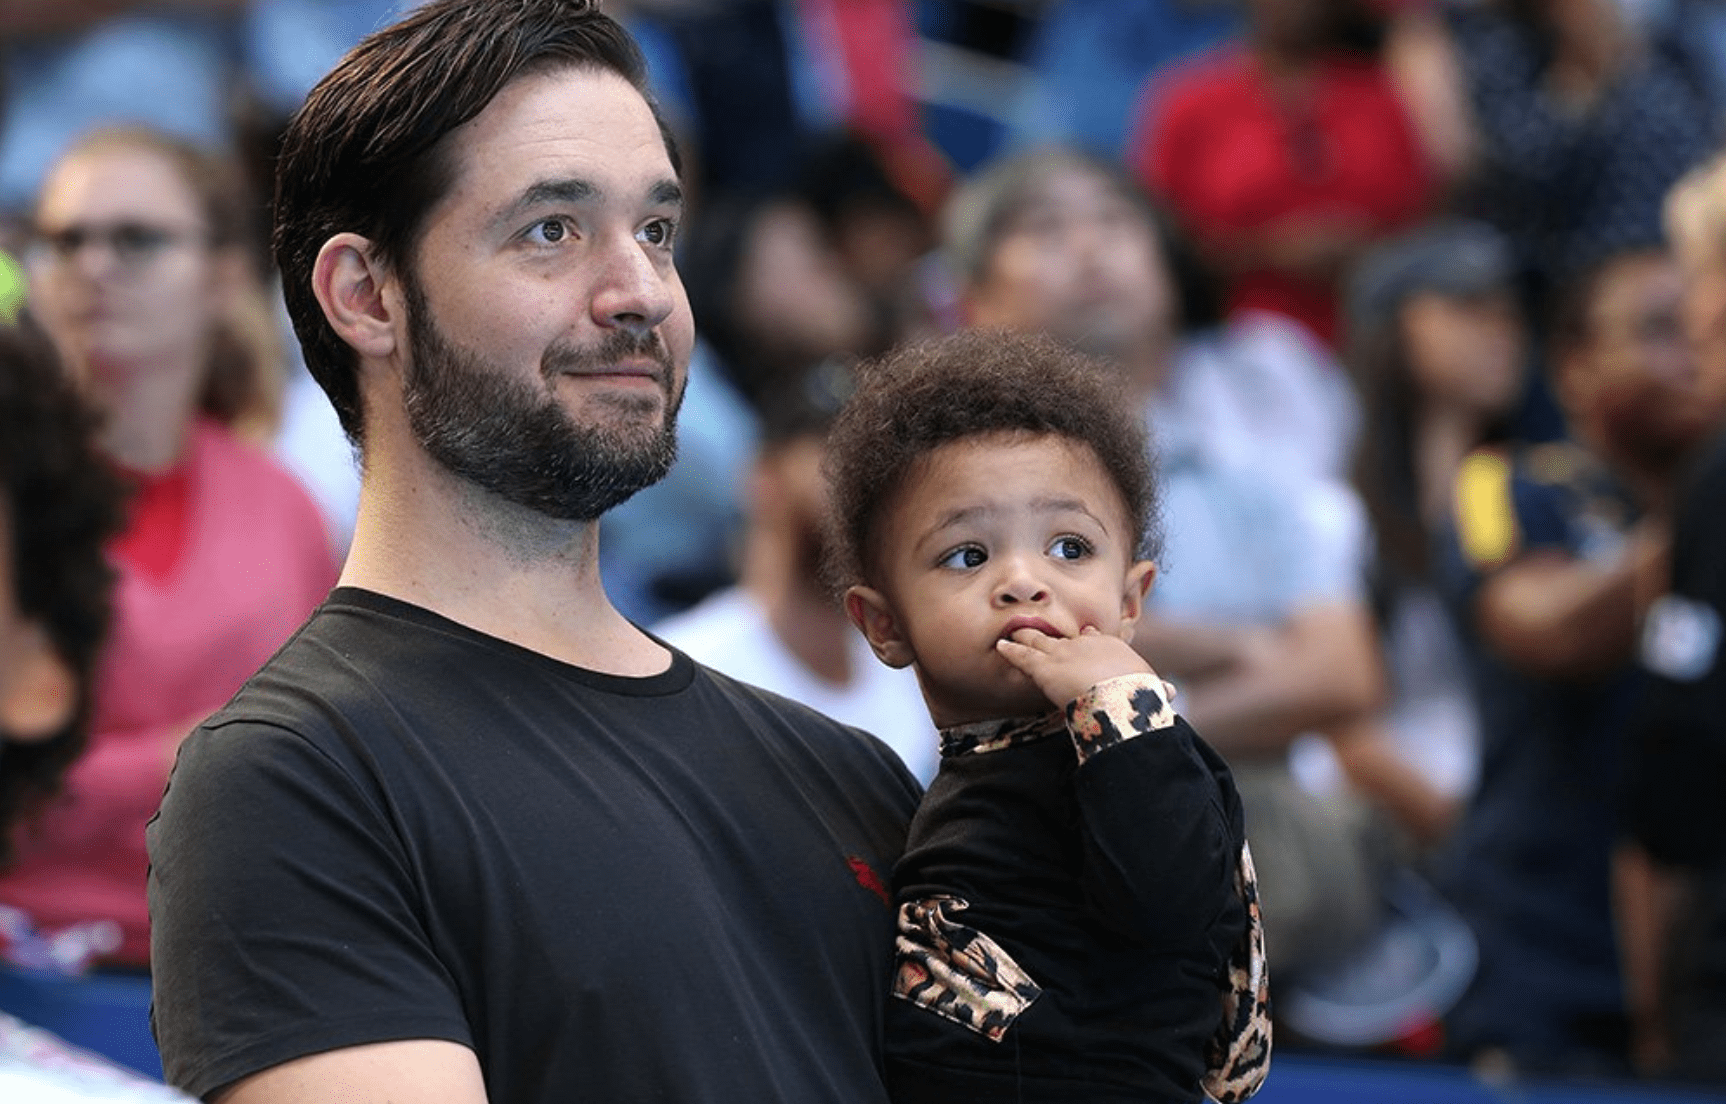 Alexis Ohanian and daughter Alexis Olympia Ohanian Jr. following the match between Serena Williams and Katie Boulter at RAC Arena on January 03, 2019 in Perth, Australia. | Source: Getty Images.